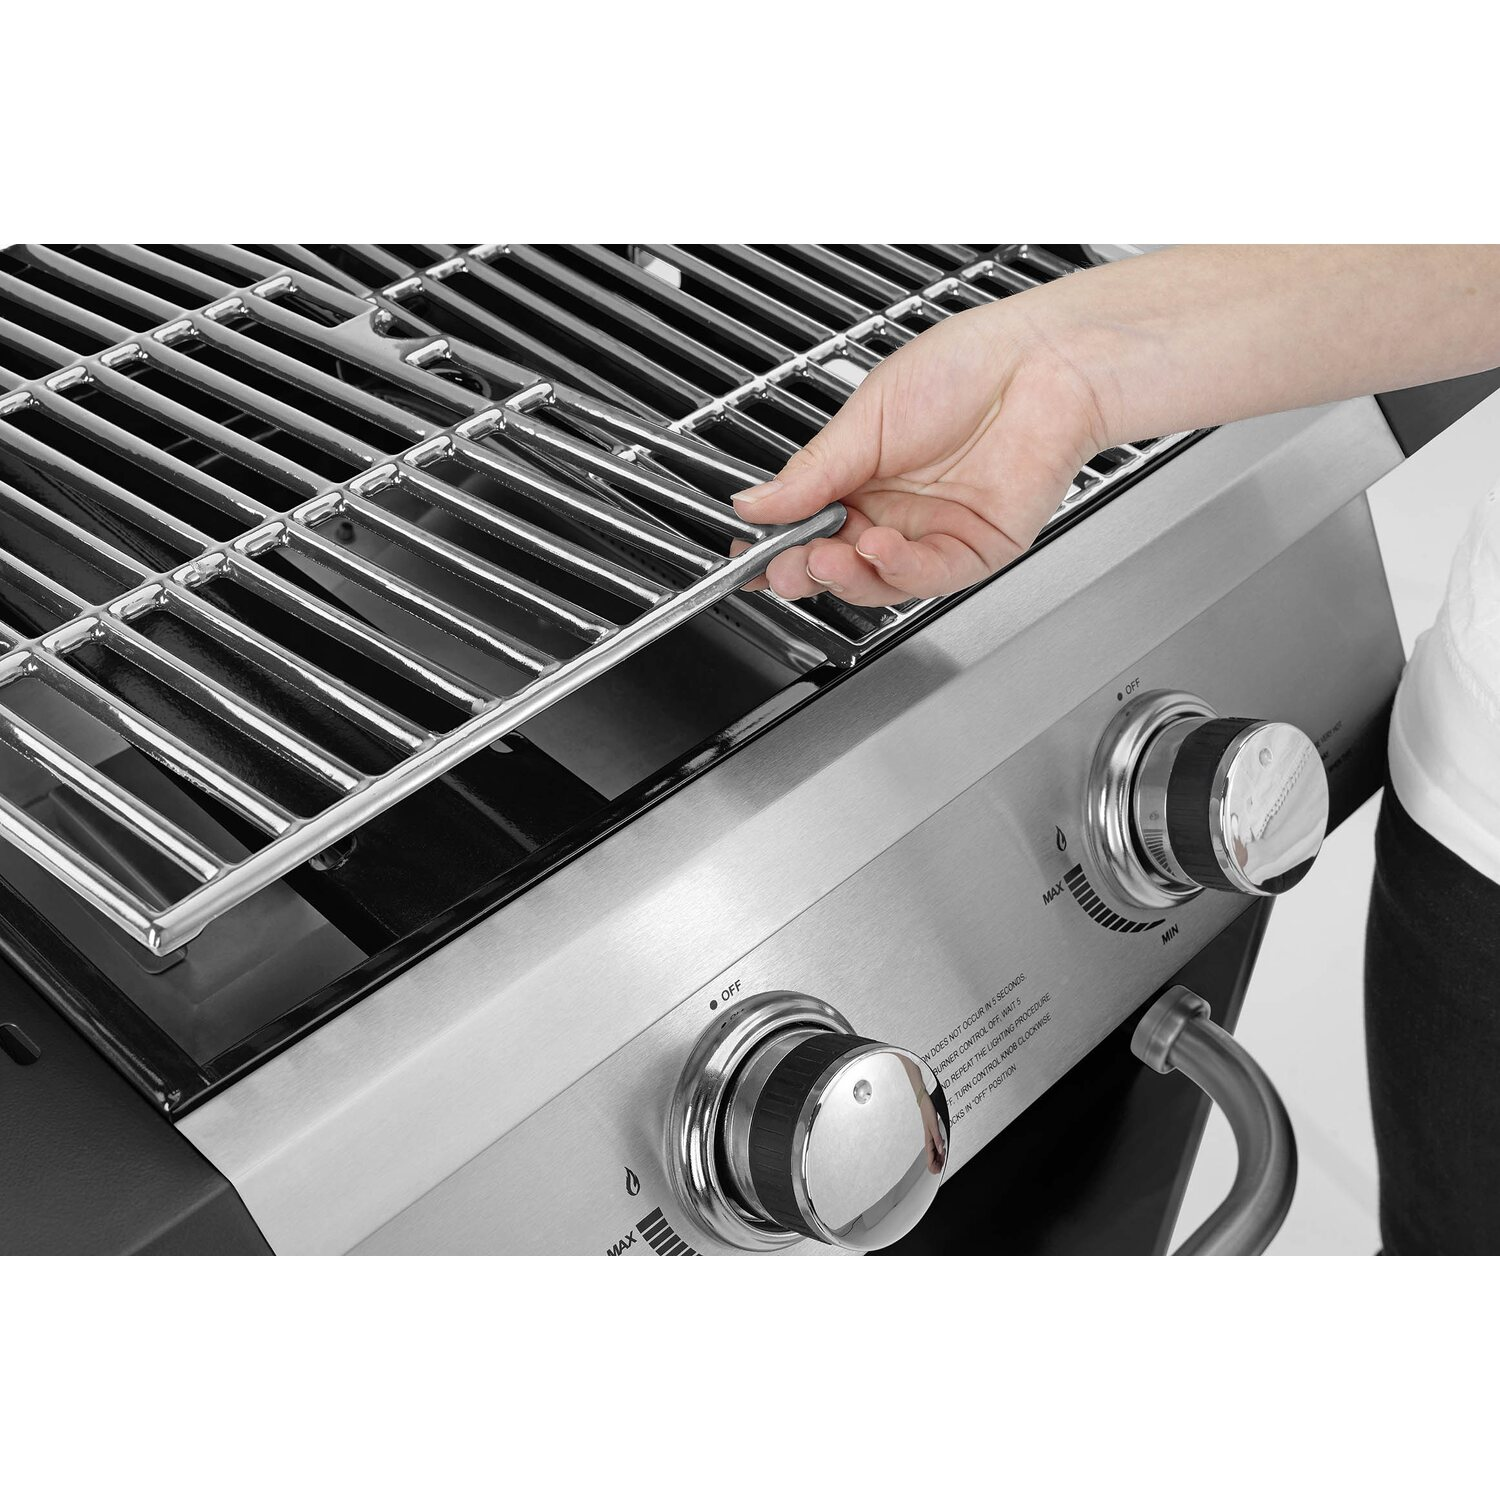 barbecue grill kaufen fabulous new post barbecue repair in riviera beach with barbecue grill. Black Bedroom Furniture Sets. Home Design Ideas